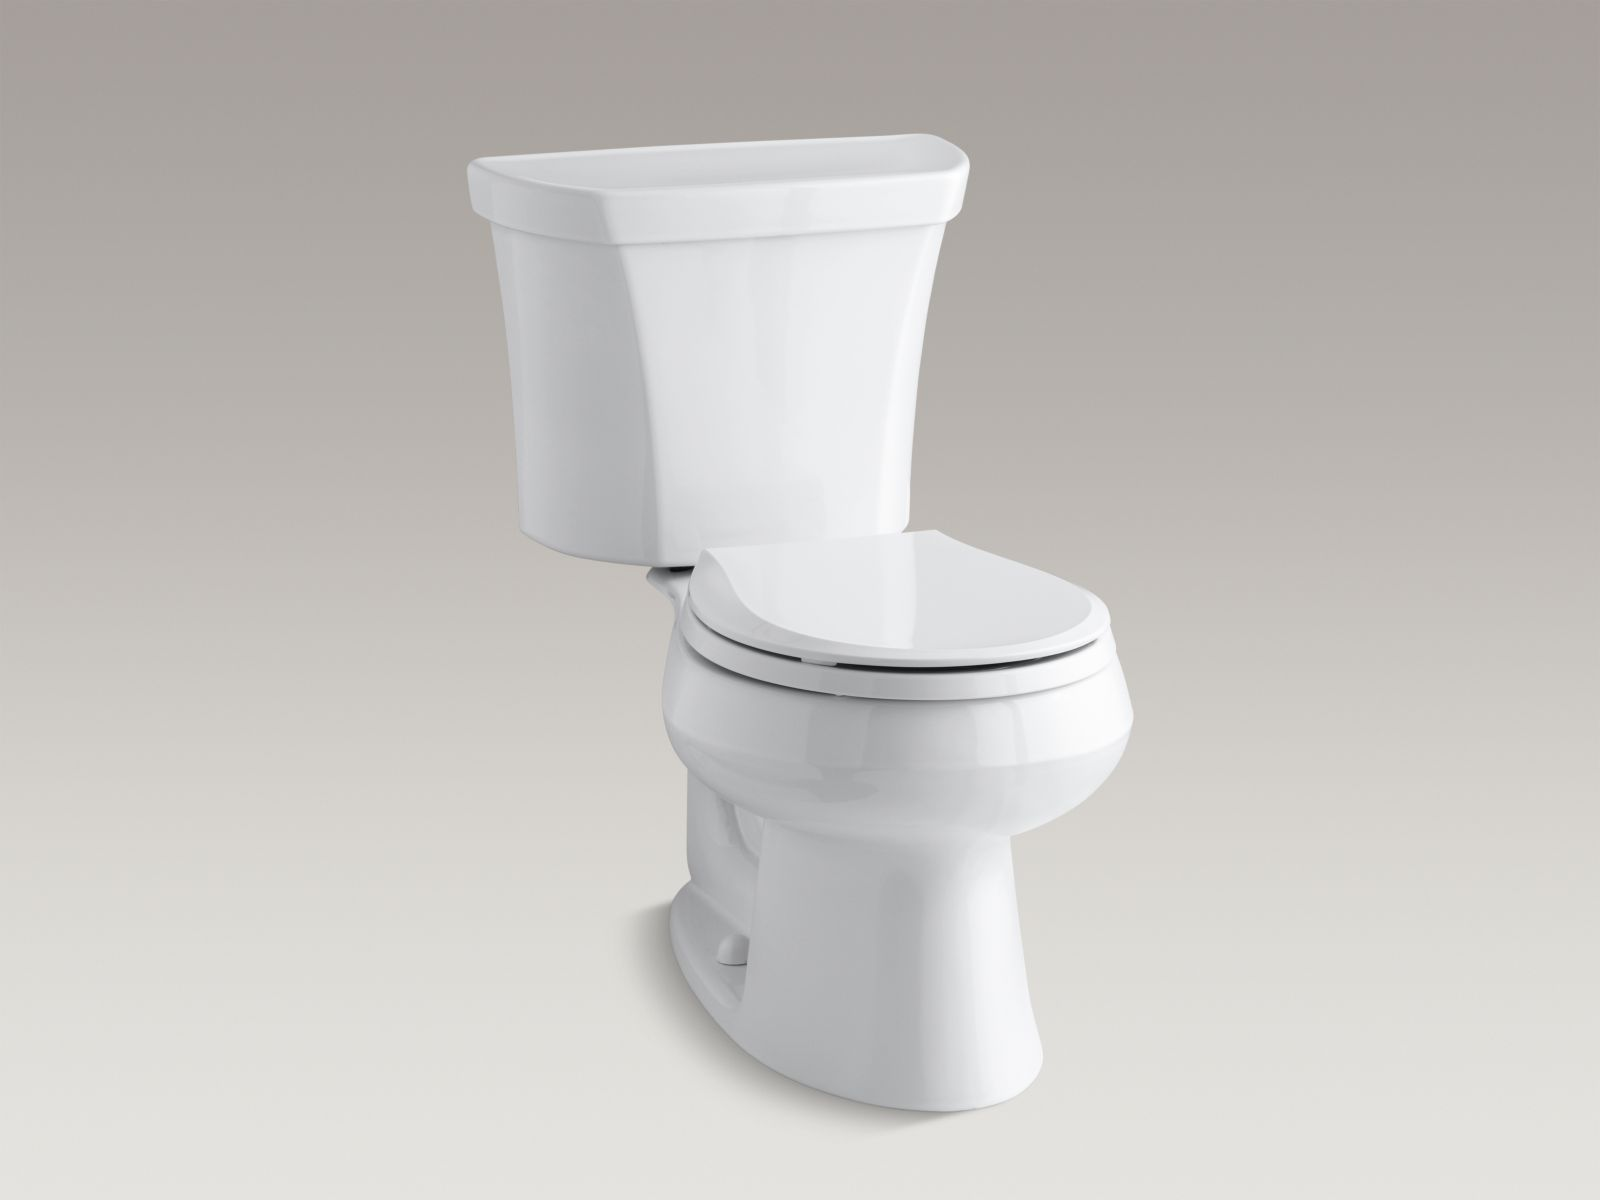 Kohler Wellworth® K-3987-RA-0 Wellworth® two-piece round-front dual-flush toilet with Class Five® flush technology and right-hand trip lever White